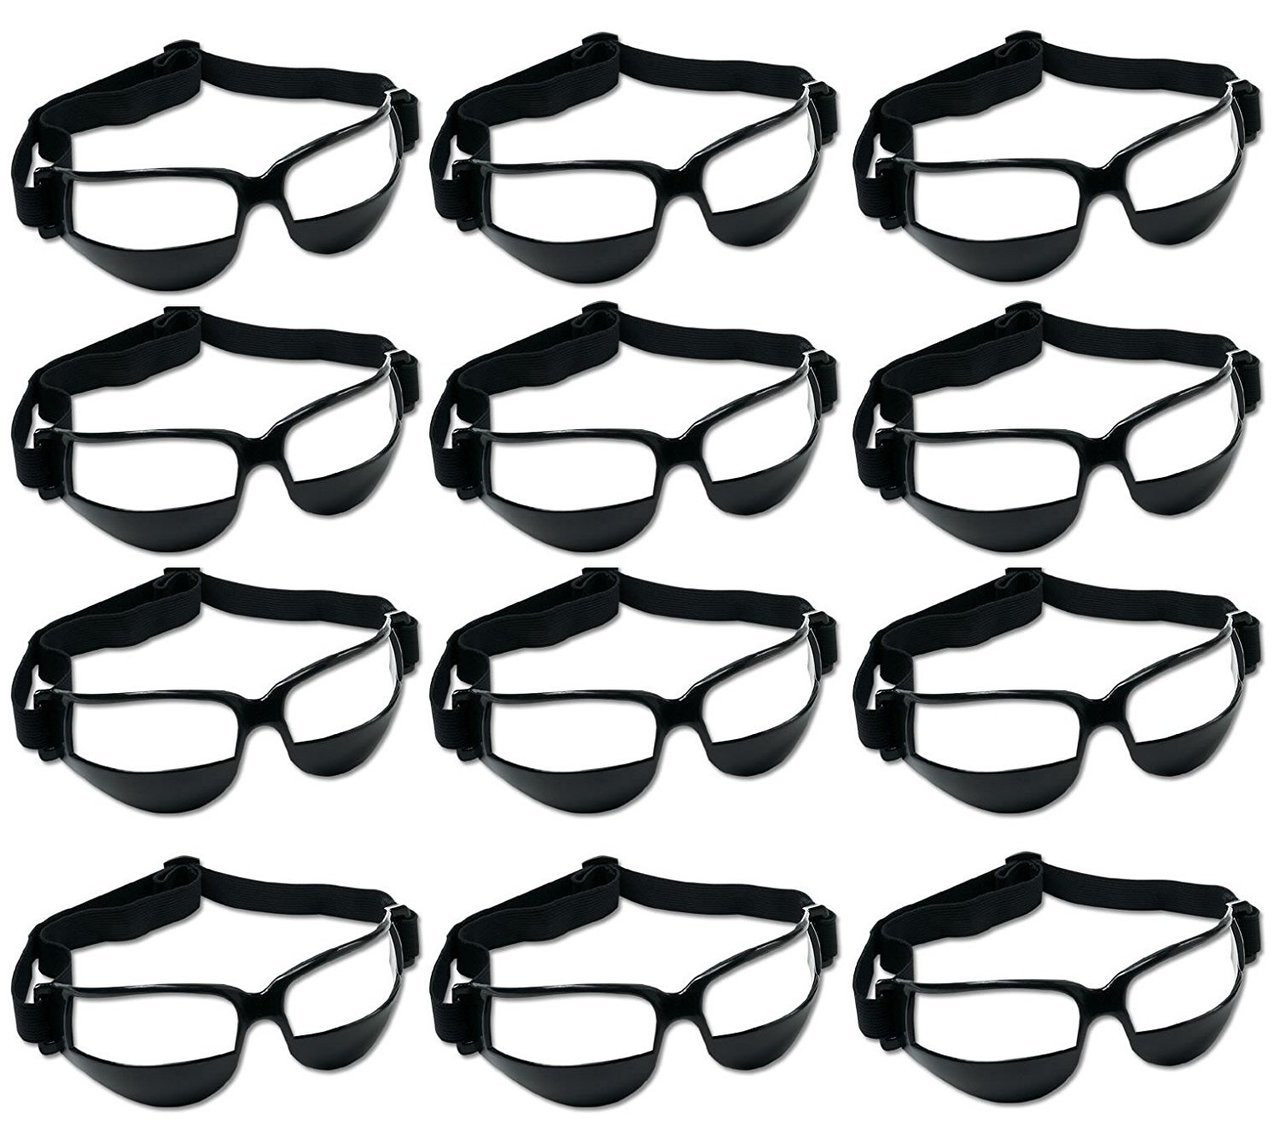 d4d4bad86f87 Heads Up Basketball Dribble Specs Set of 12 - Athletic Stuff